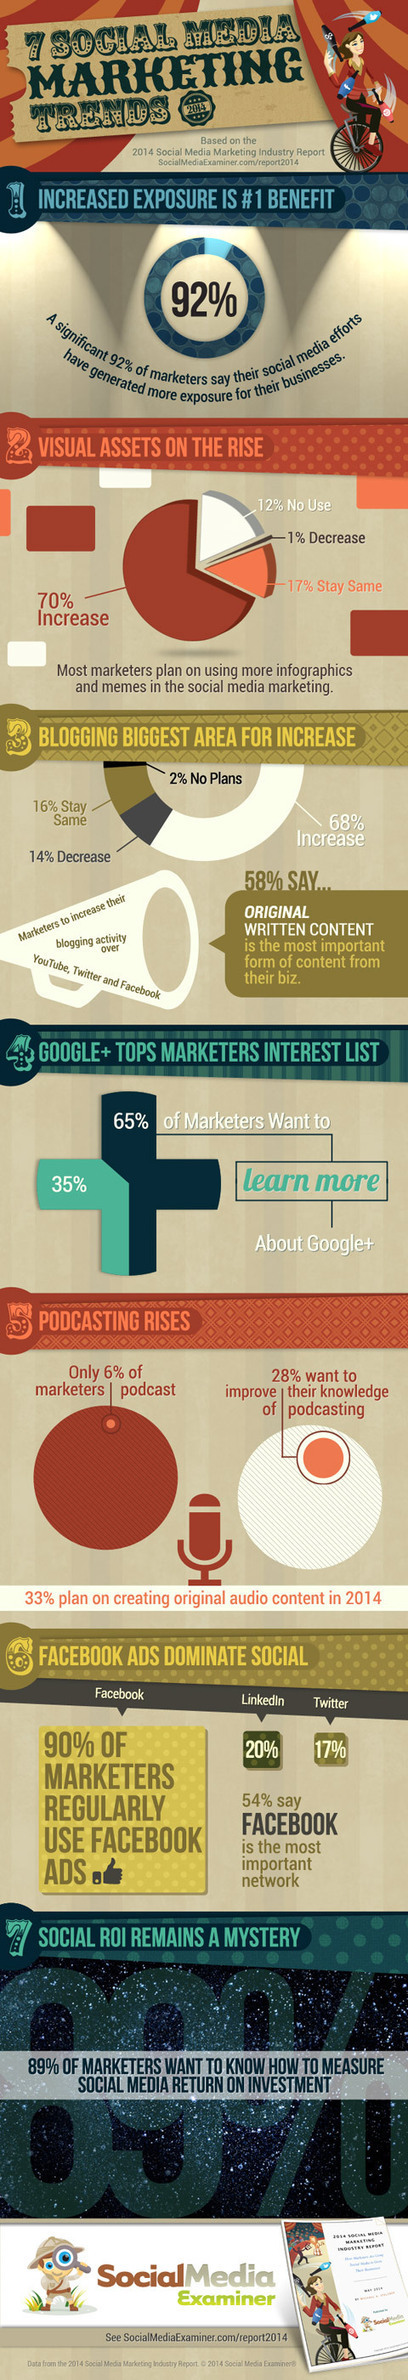 The top 7 social media marketing trends in 2014 - The Hub | digital marketing strategy | Scoop.it